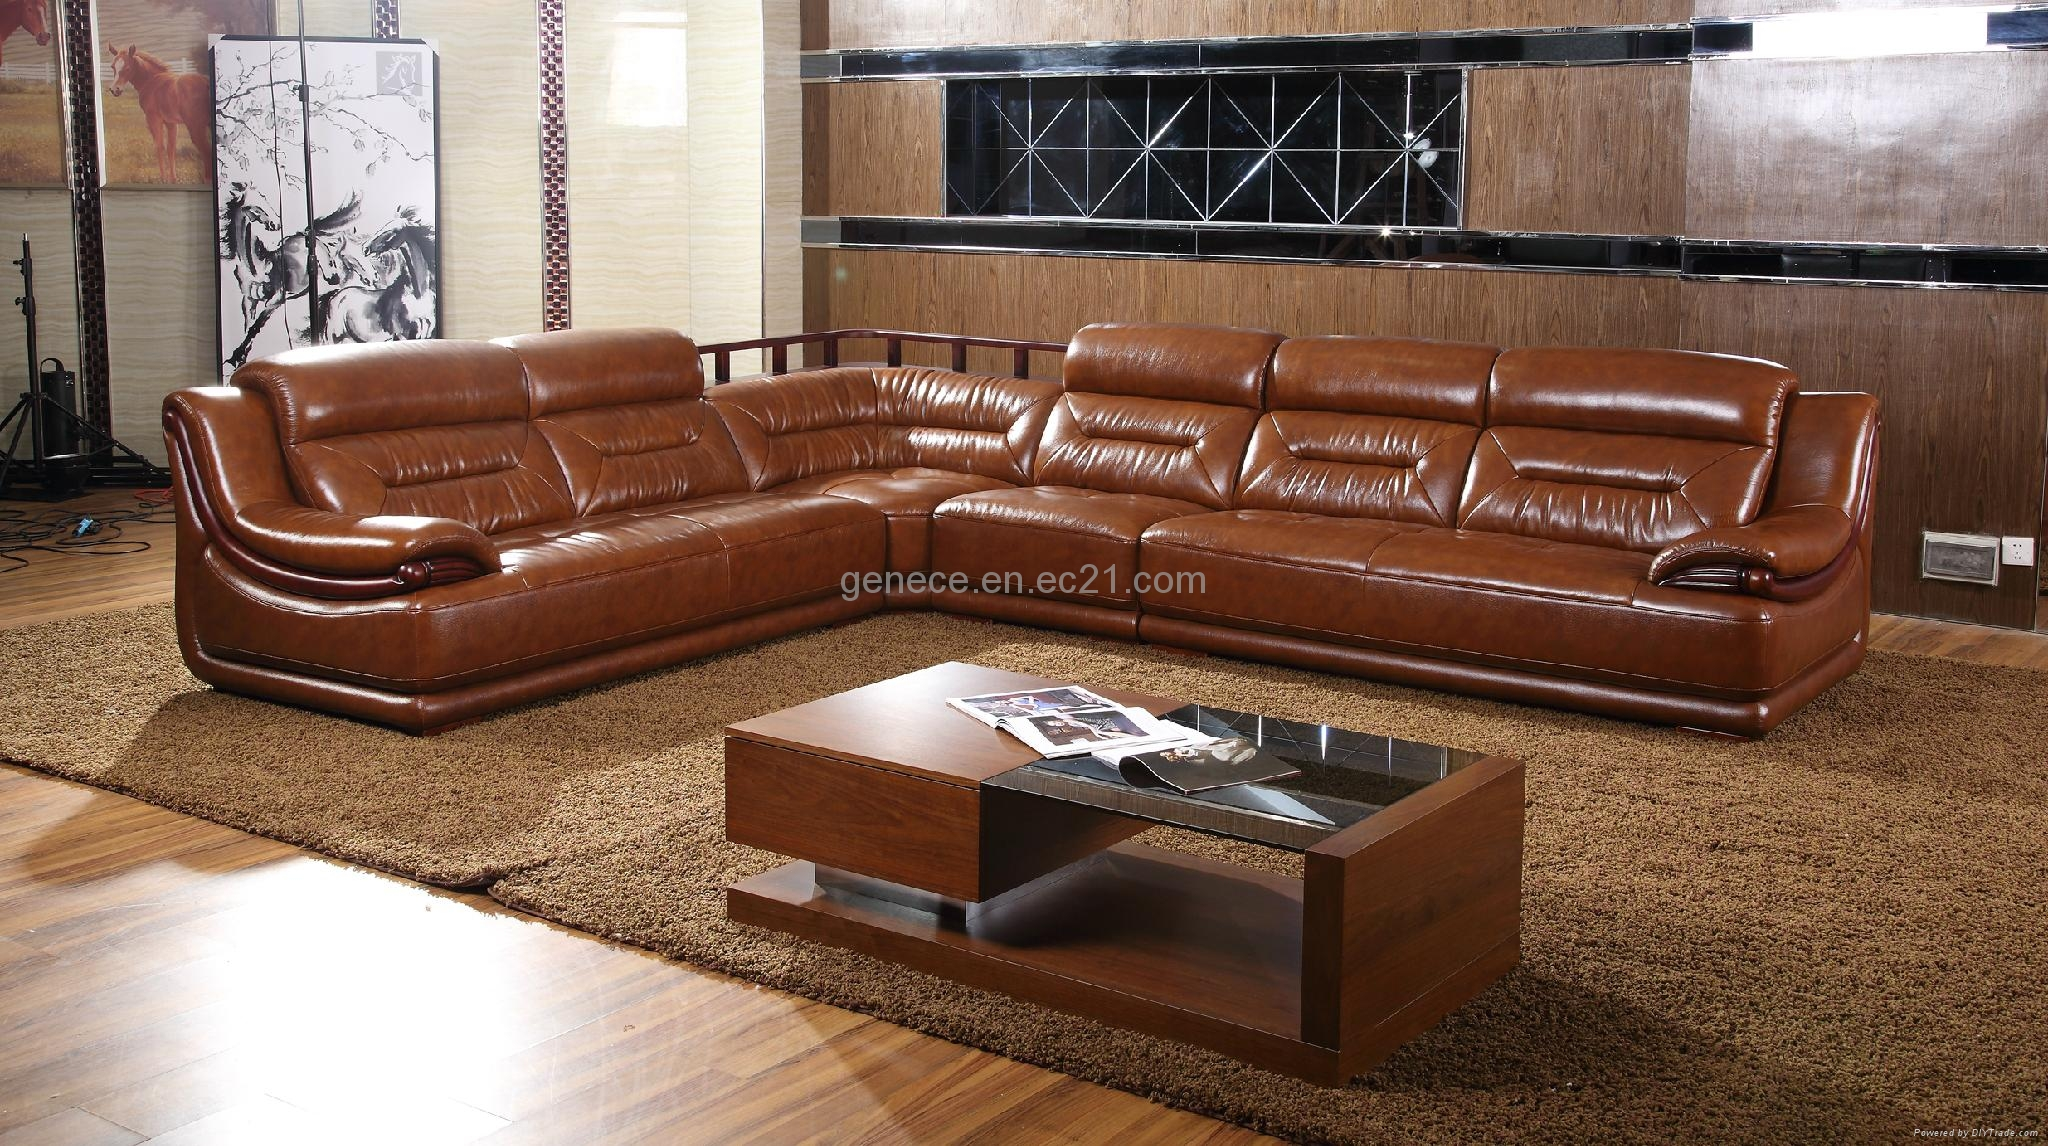 Top Grain Cow Leather Sofa Wooden Secitonal Sofa Quality